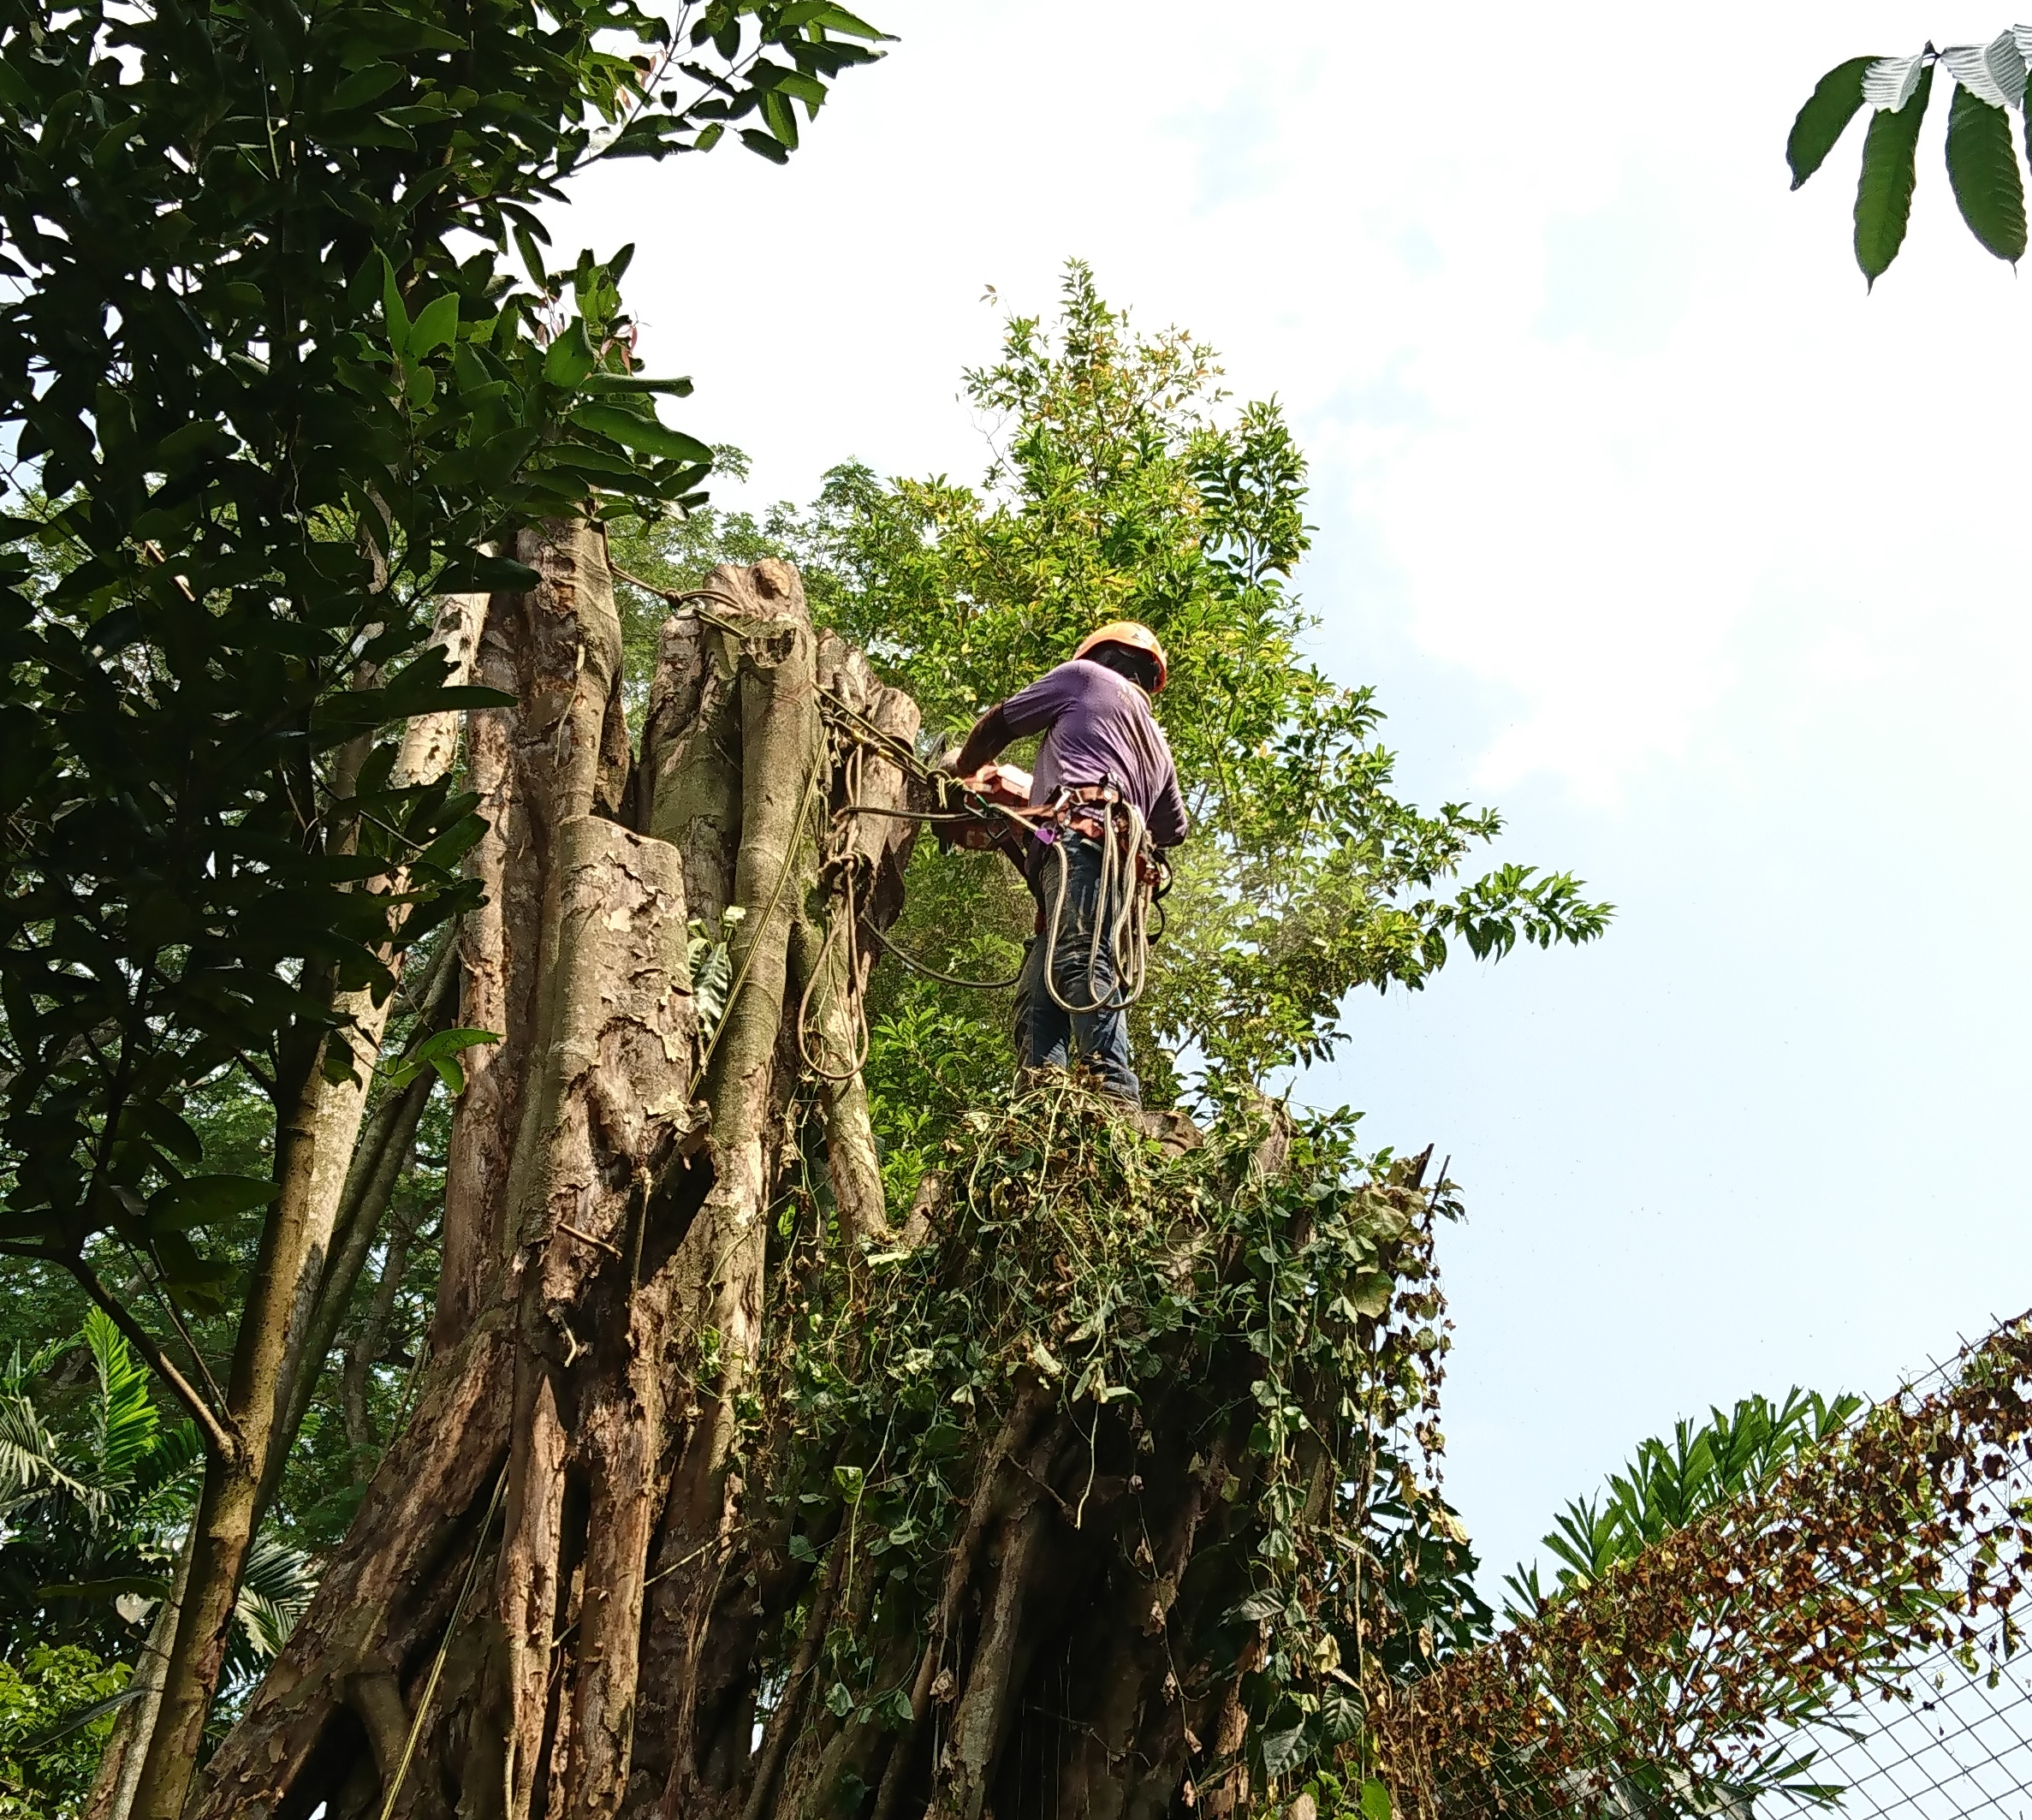 An arborist at work. He uses a cut porti